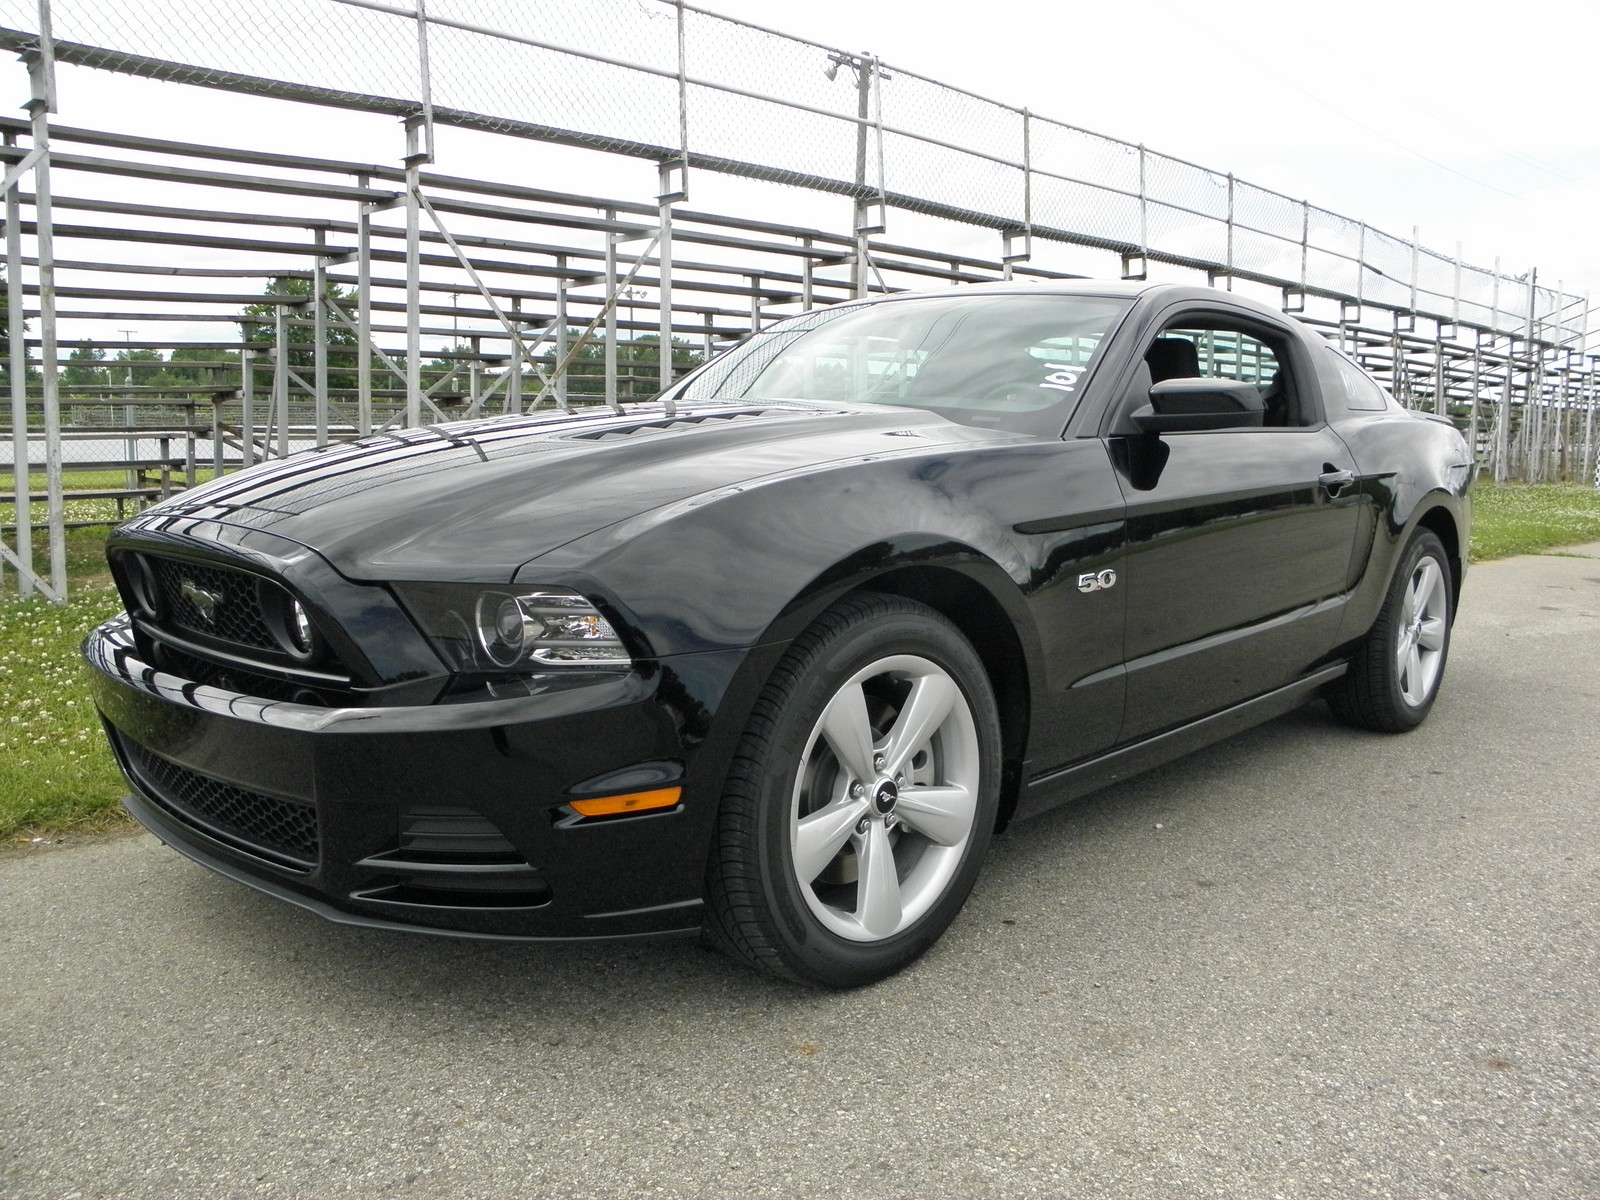 stock 2014 ford mustang gt 1 4 mile drag racing timeslip specs 0 60. Black Bedroom Furniture Sets. Home Design Ideas